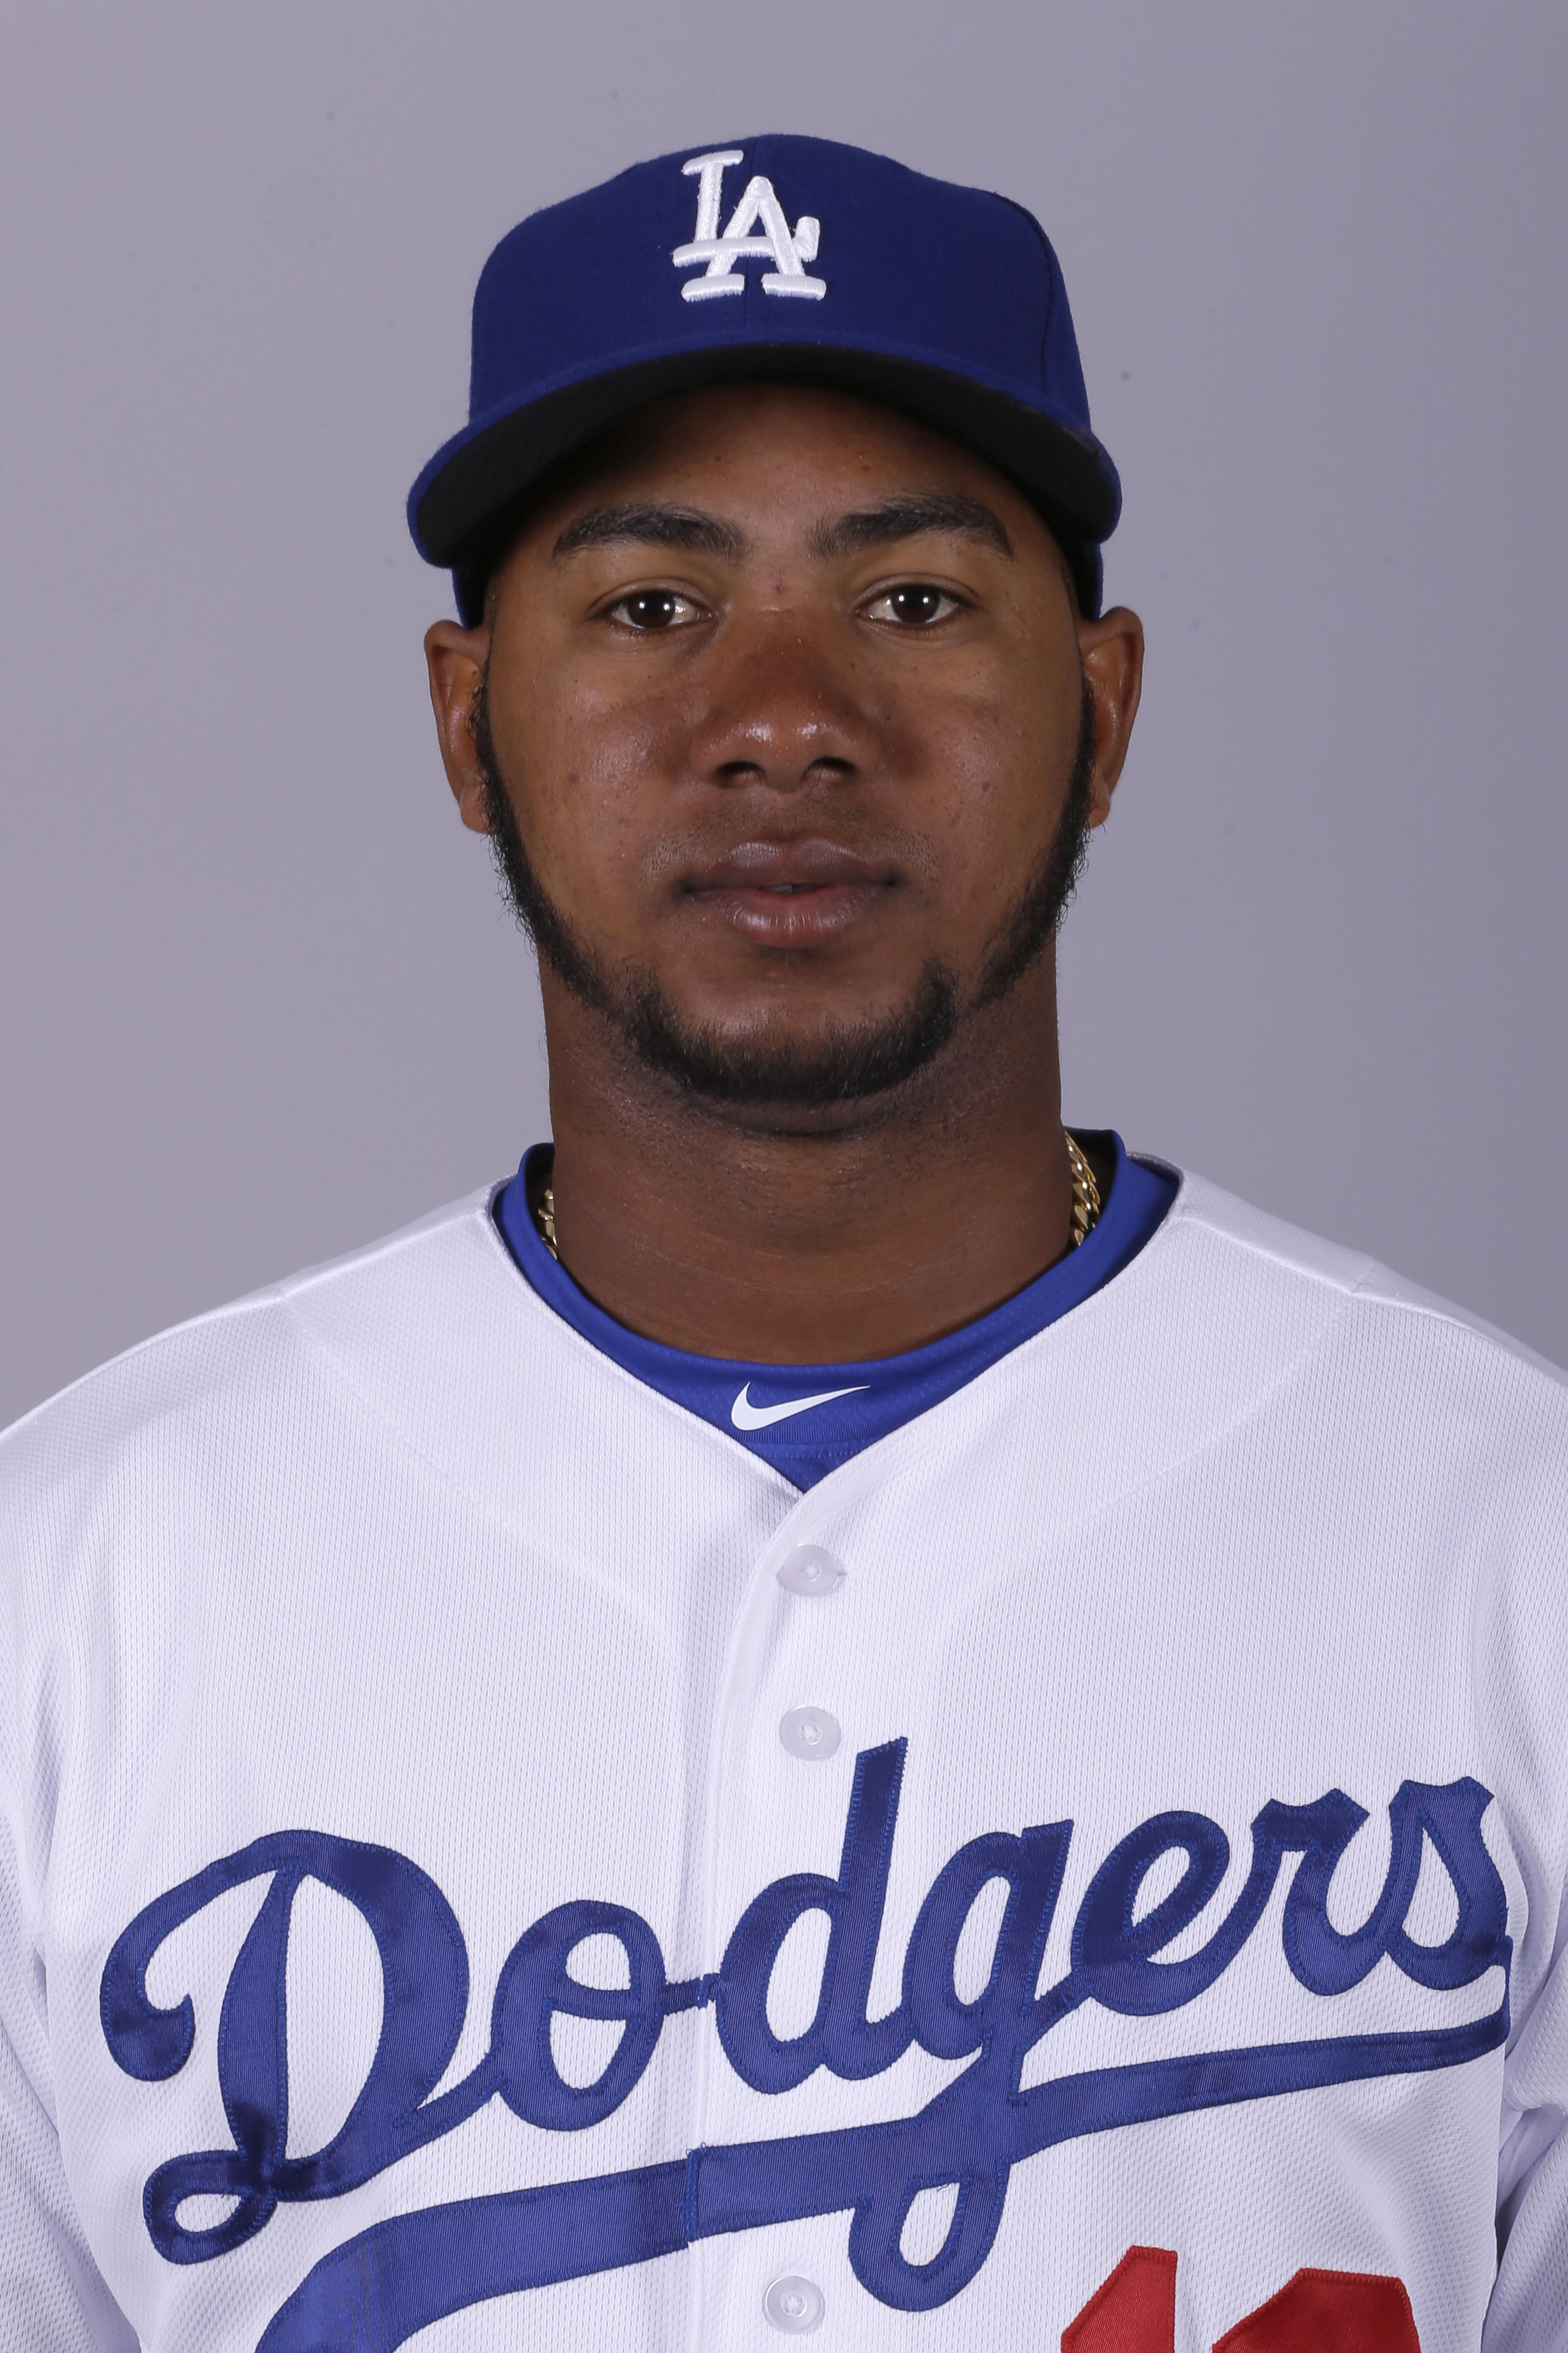 FILE - This 2015 file photo shows Erisbel Arruebarrena of the Los Angeles Dodgers baseball team. Infielder Erisbel Arruebarrena has been suspended by the Los Angeles Dodgers for the remainder of the season. The Dodgers said Thursday, May 21, 2015 they dis